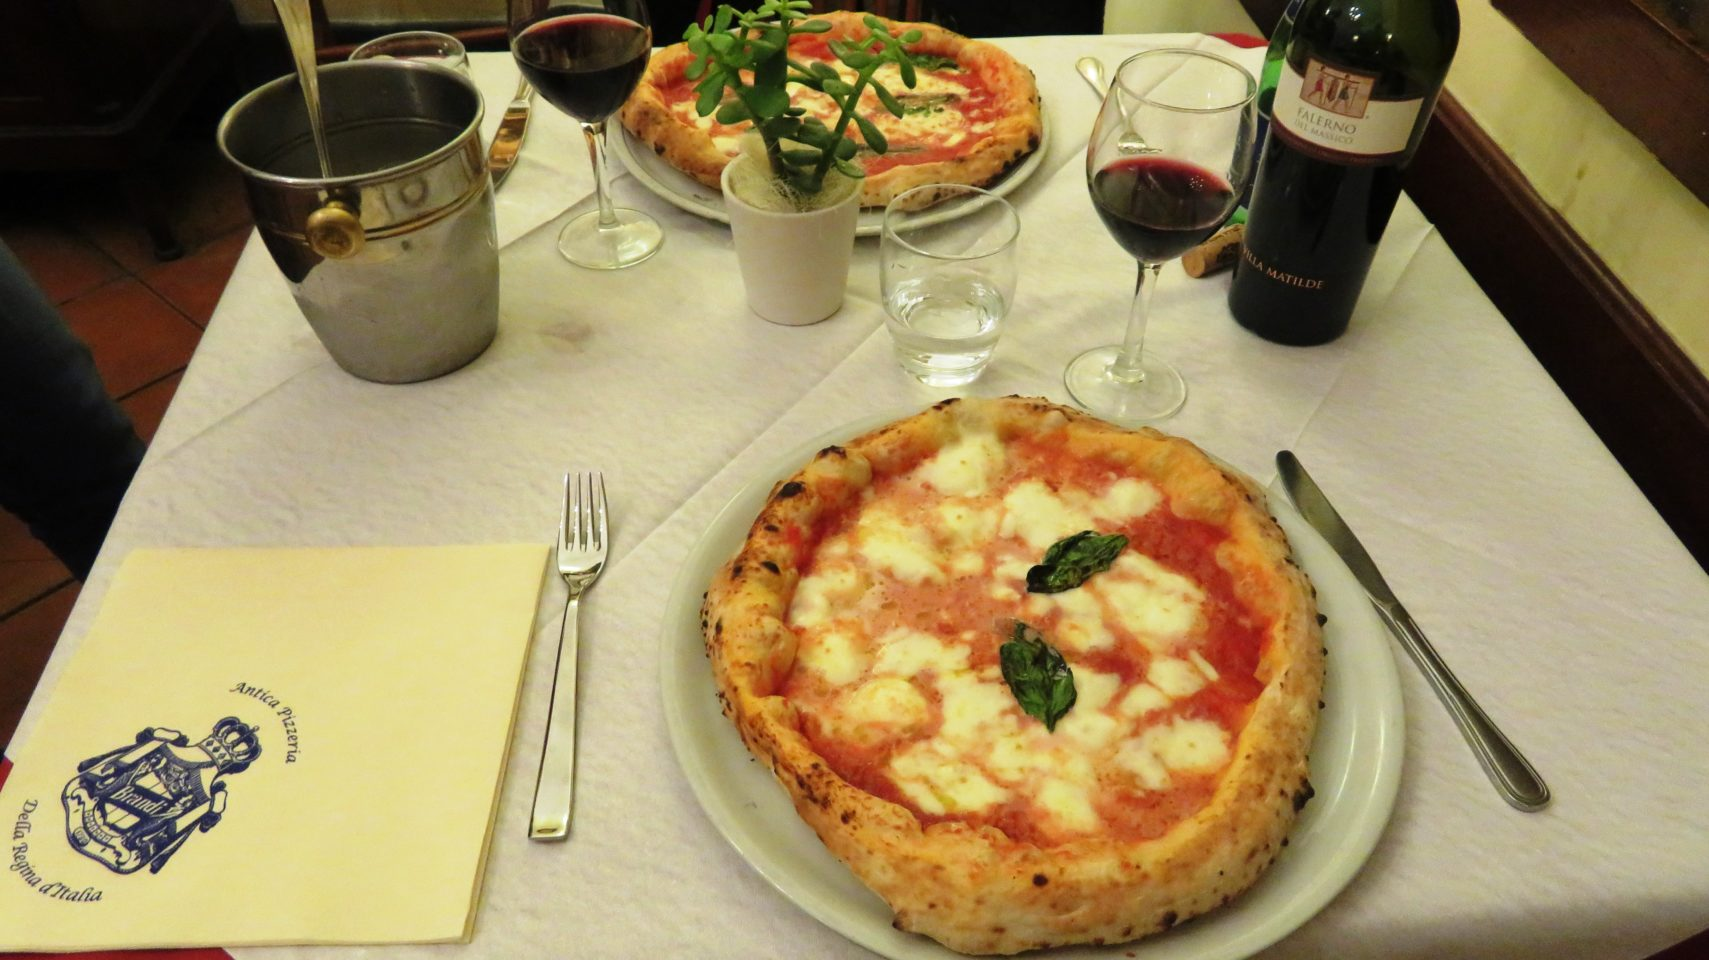 Pizza Margherita at Pizzeria Brandi in Naples Italy